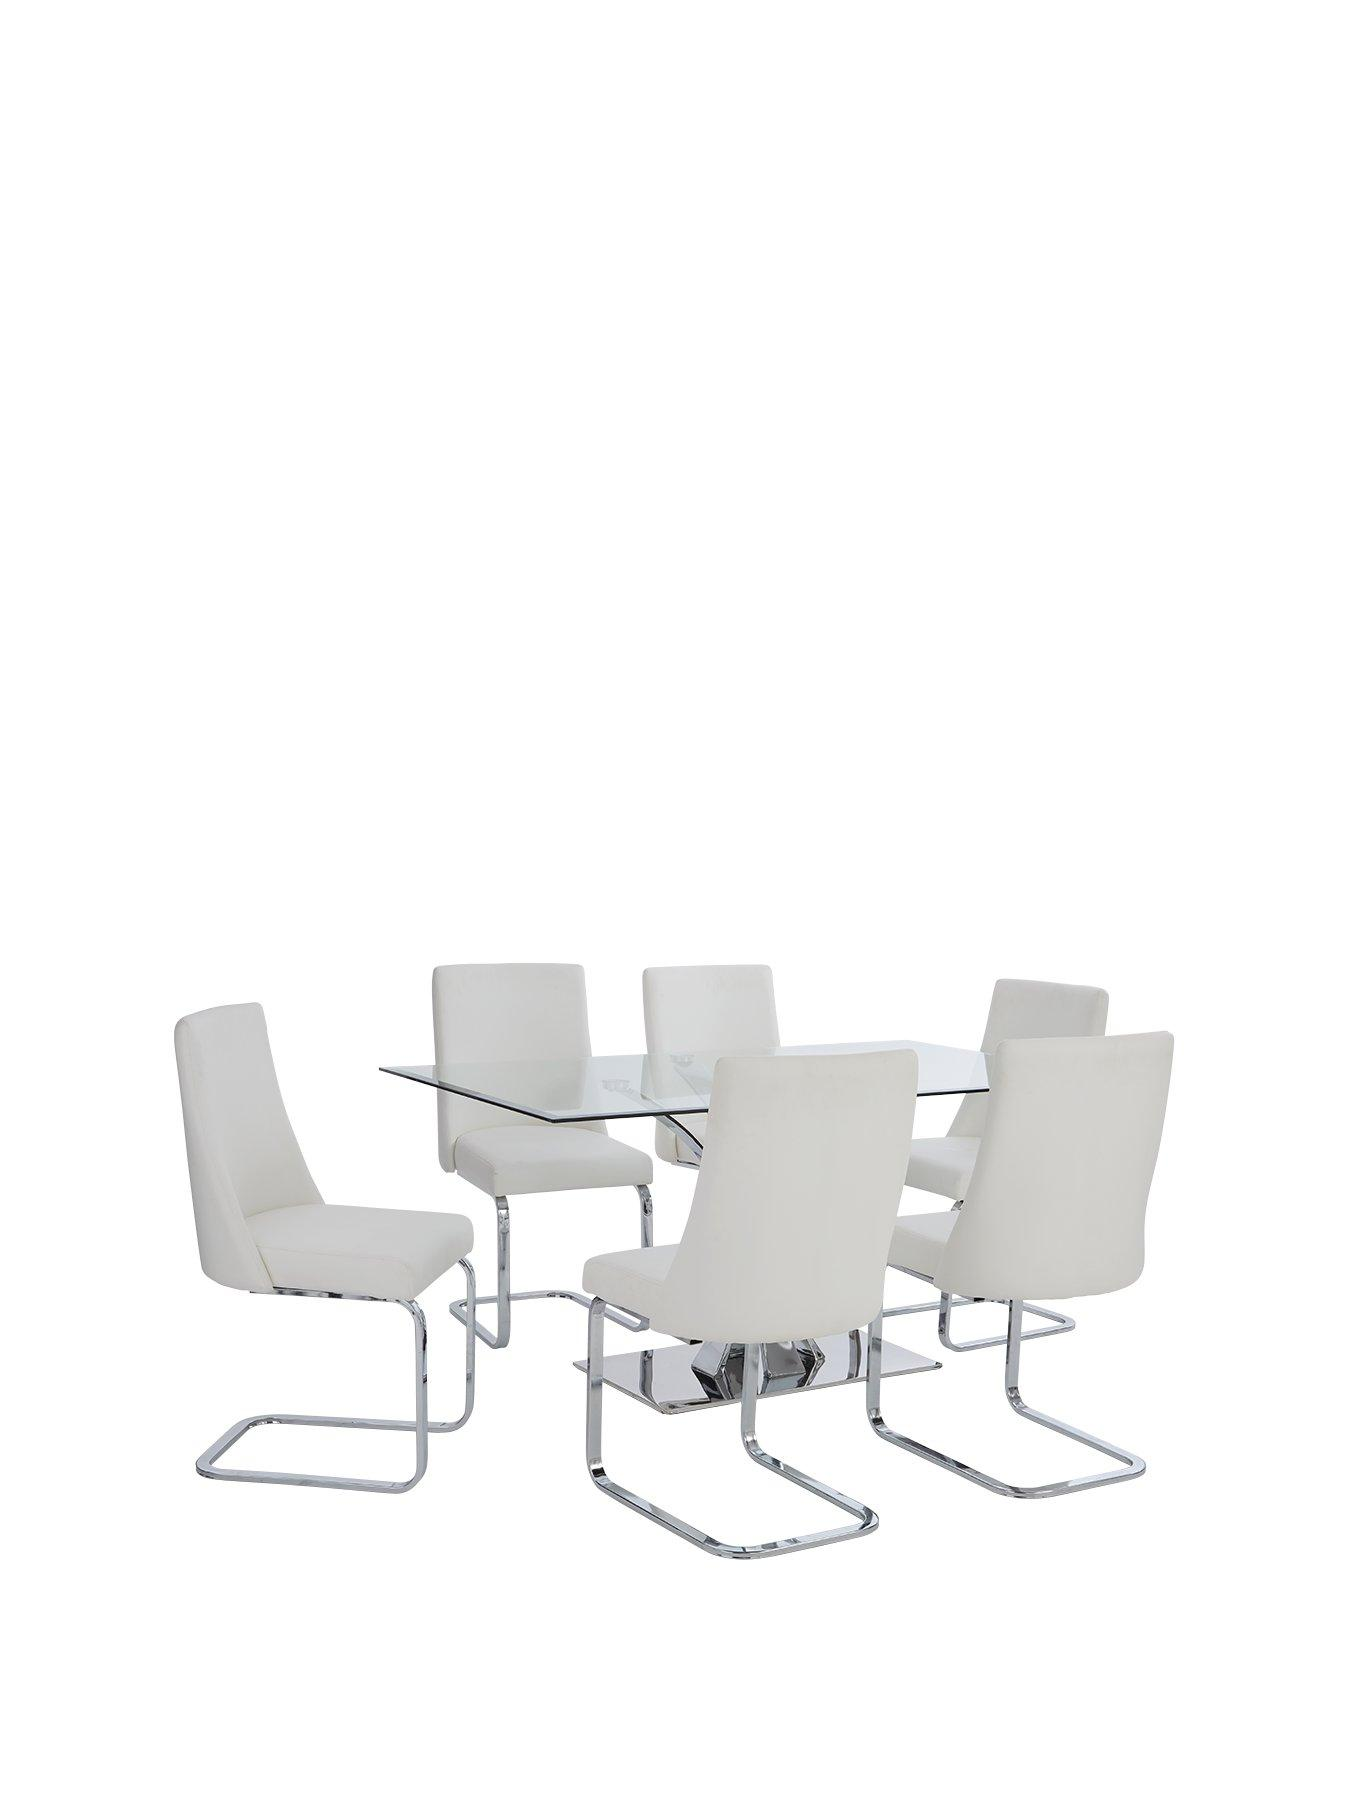 Dining room | Dining table & chair sets | Home & garden